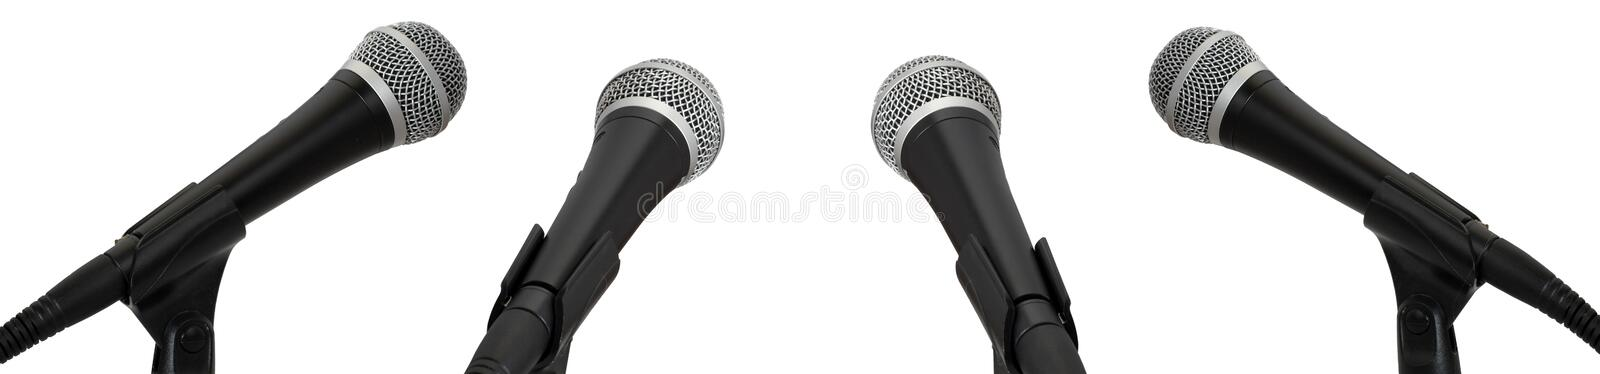 Download Microphones stock image. Image of conference, entertainment - 4213533